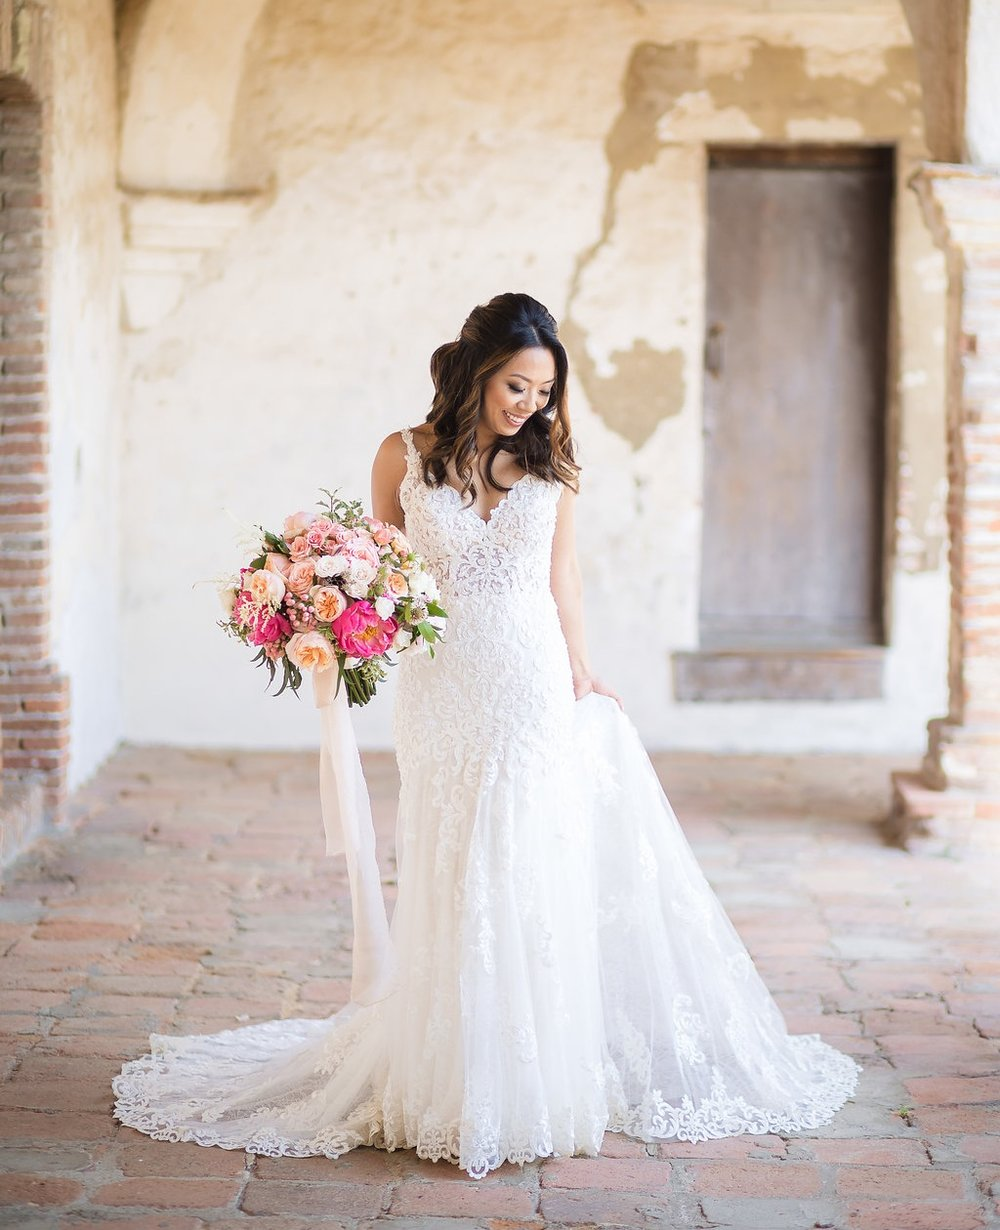 Photo: Brian Leahy Photography // Venue: Serra Plaza // Bouquet: Three Petals Floral Design